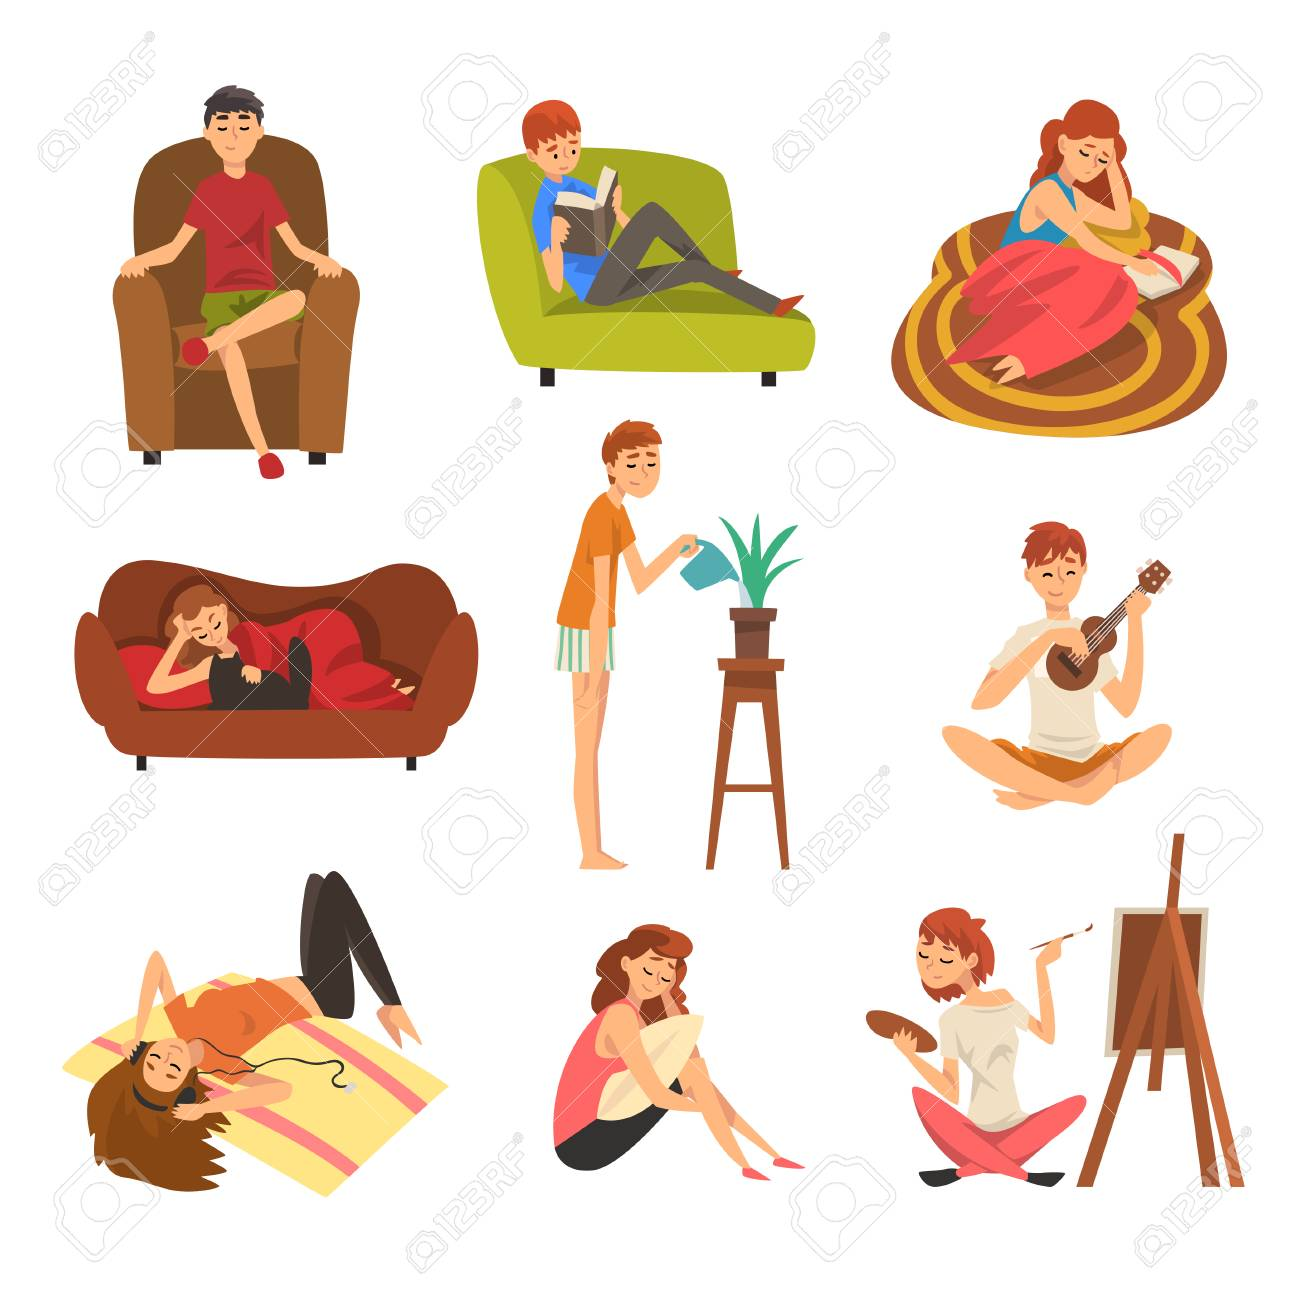 People Spending Weekend at Home and Relaxing Set, Man and Woman Reading Books, Lying, Dreaming, Resting at Home Vector Illustration - 116118909